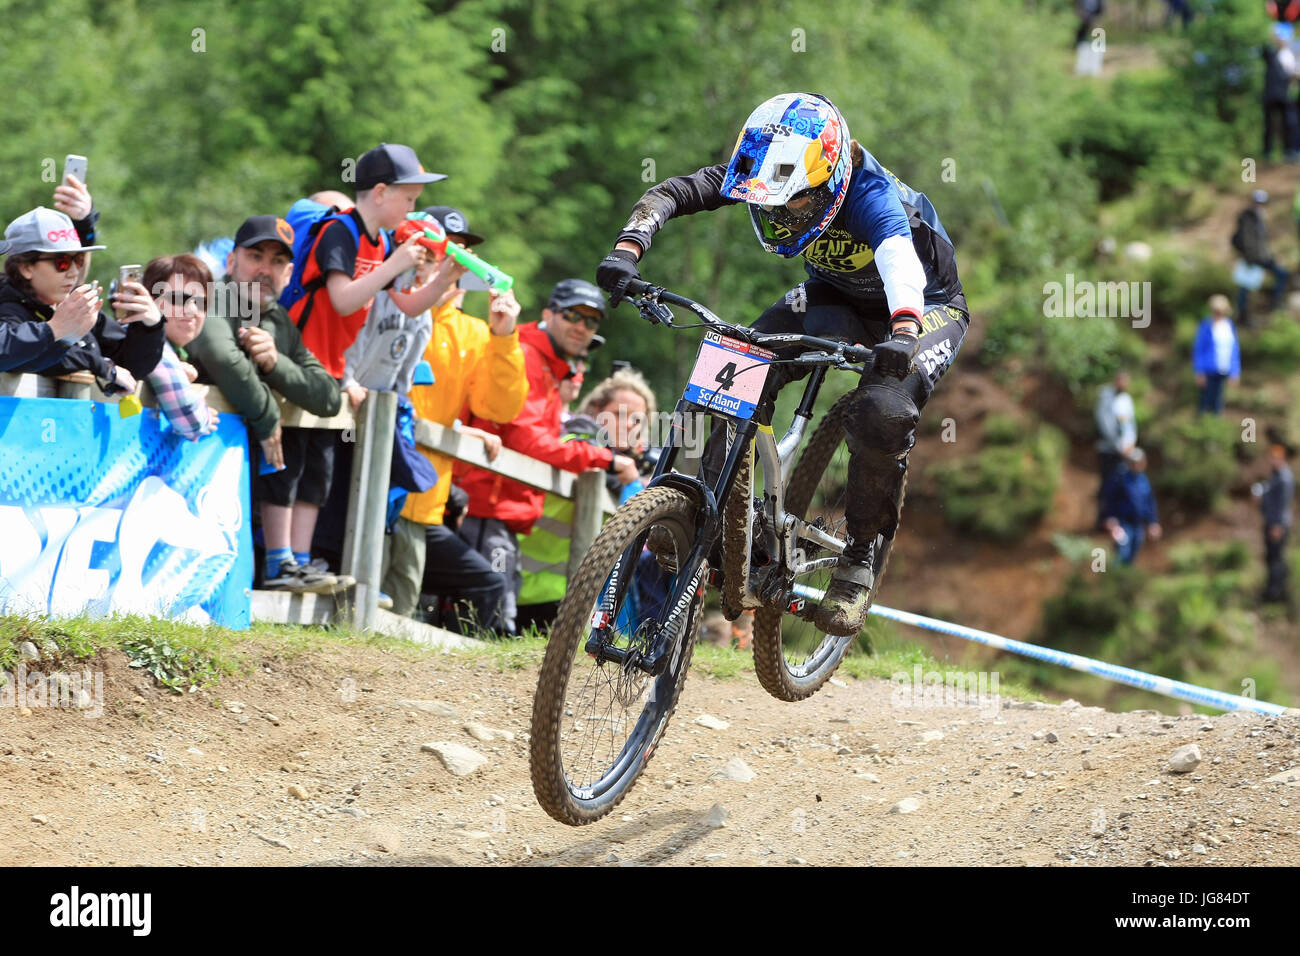 Fort William, Scotland. 4th June, 2017. Myriam Nicole at the Mountain Bike Downhill World Cup. - Stock Image